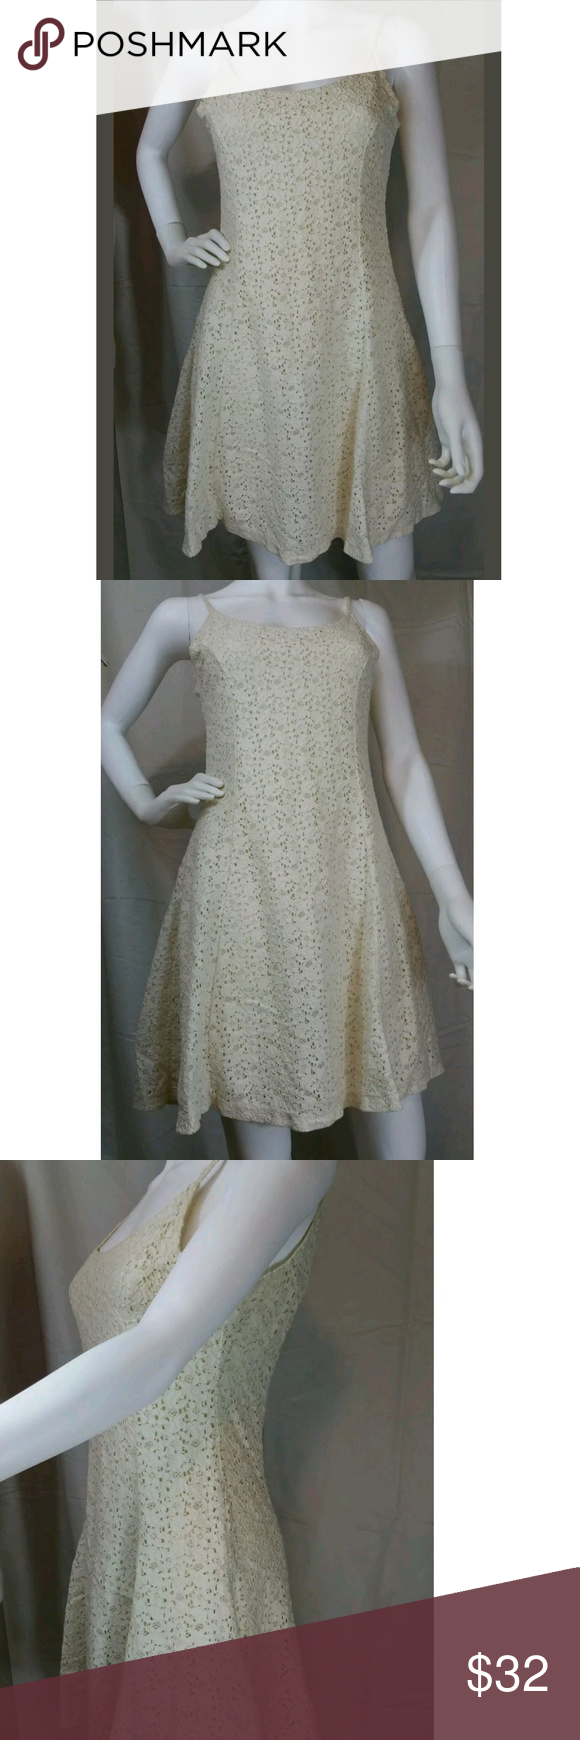 adbebba4b12 90s Floral Cream Lace Dress Vintage Skater M This is a gorgeous vintage 90s  style sleeveless sun dress. This is in great condition.